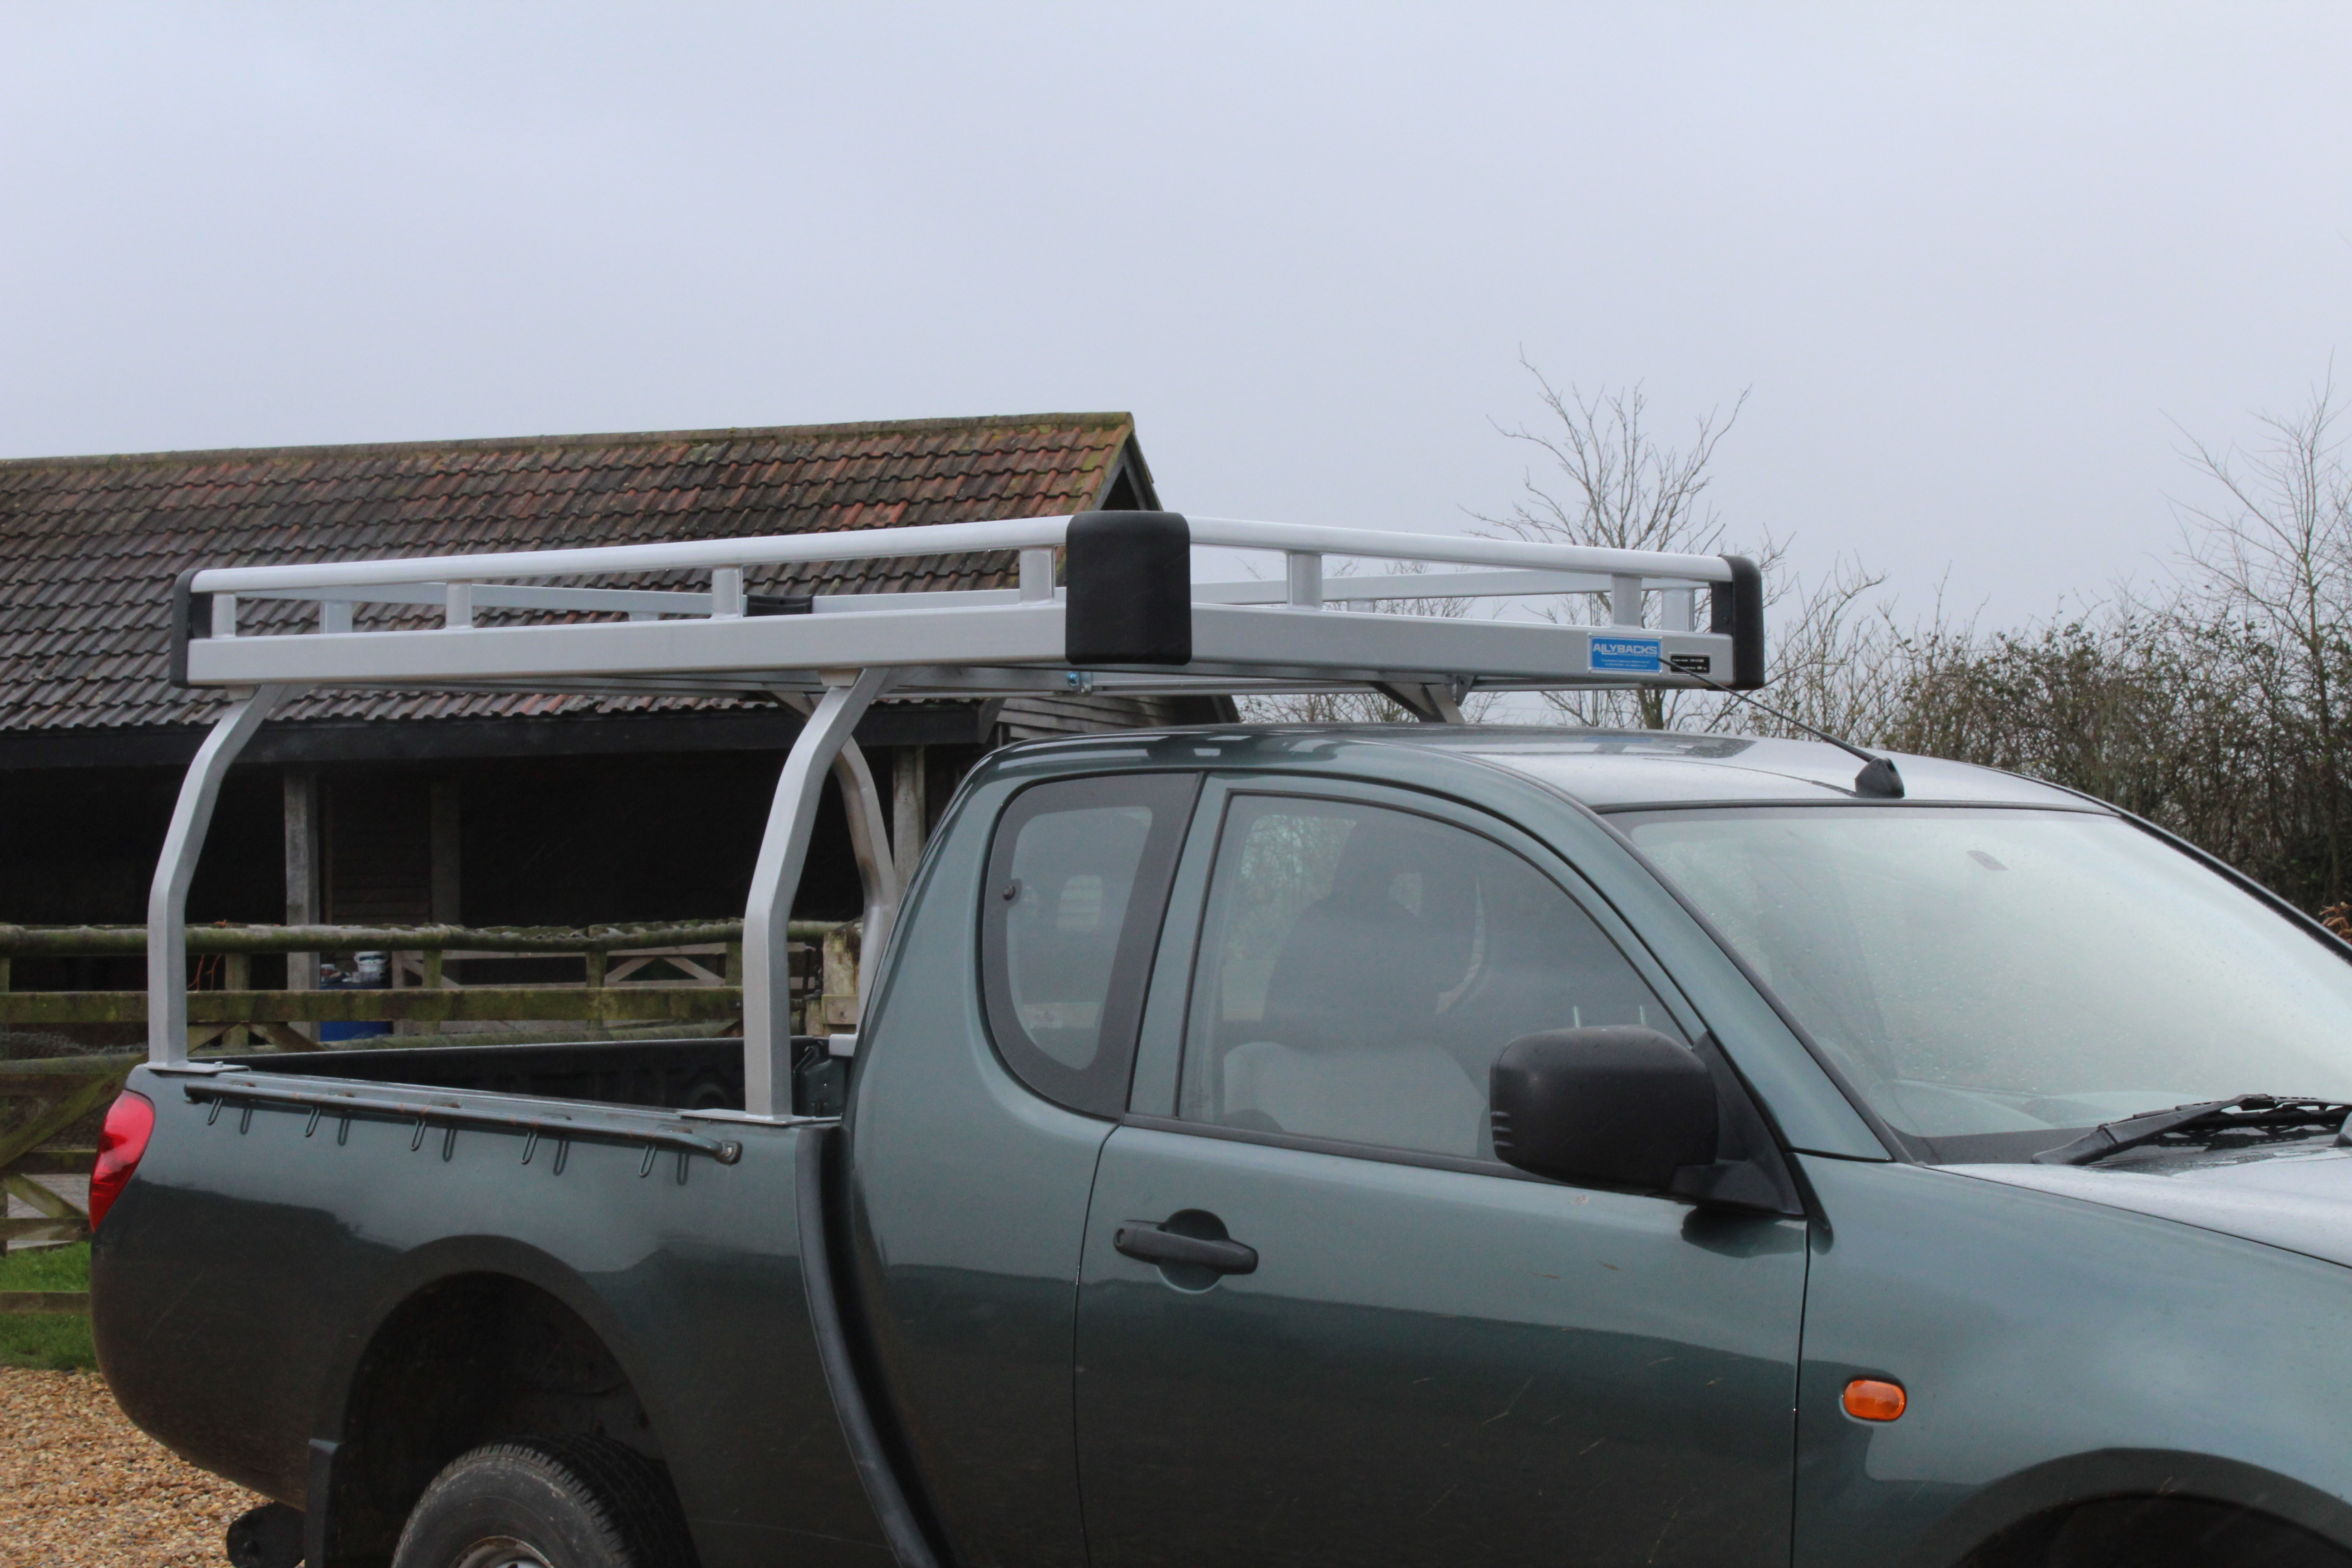 elegant to bed her carrier a racks toyota kayak as dog with rack ta well of ford truck